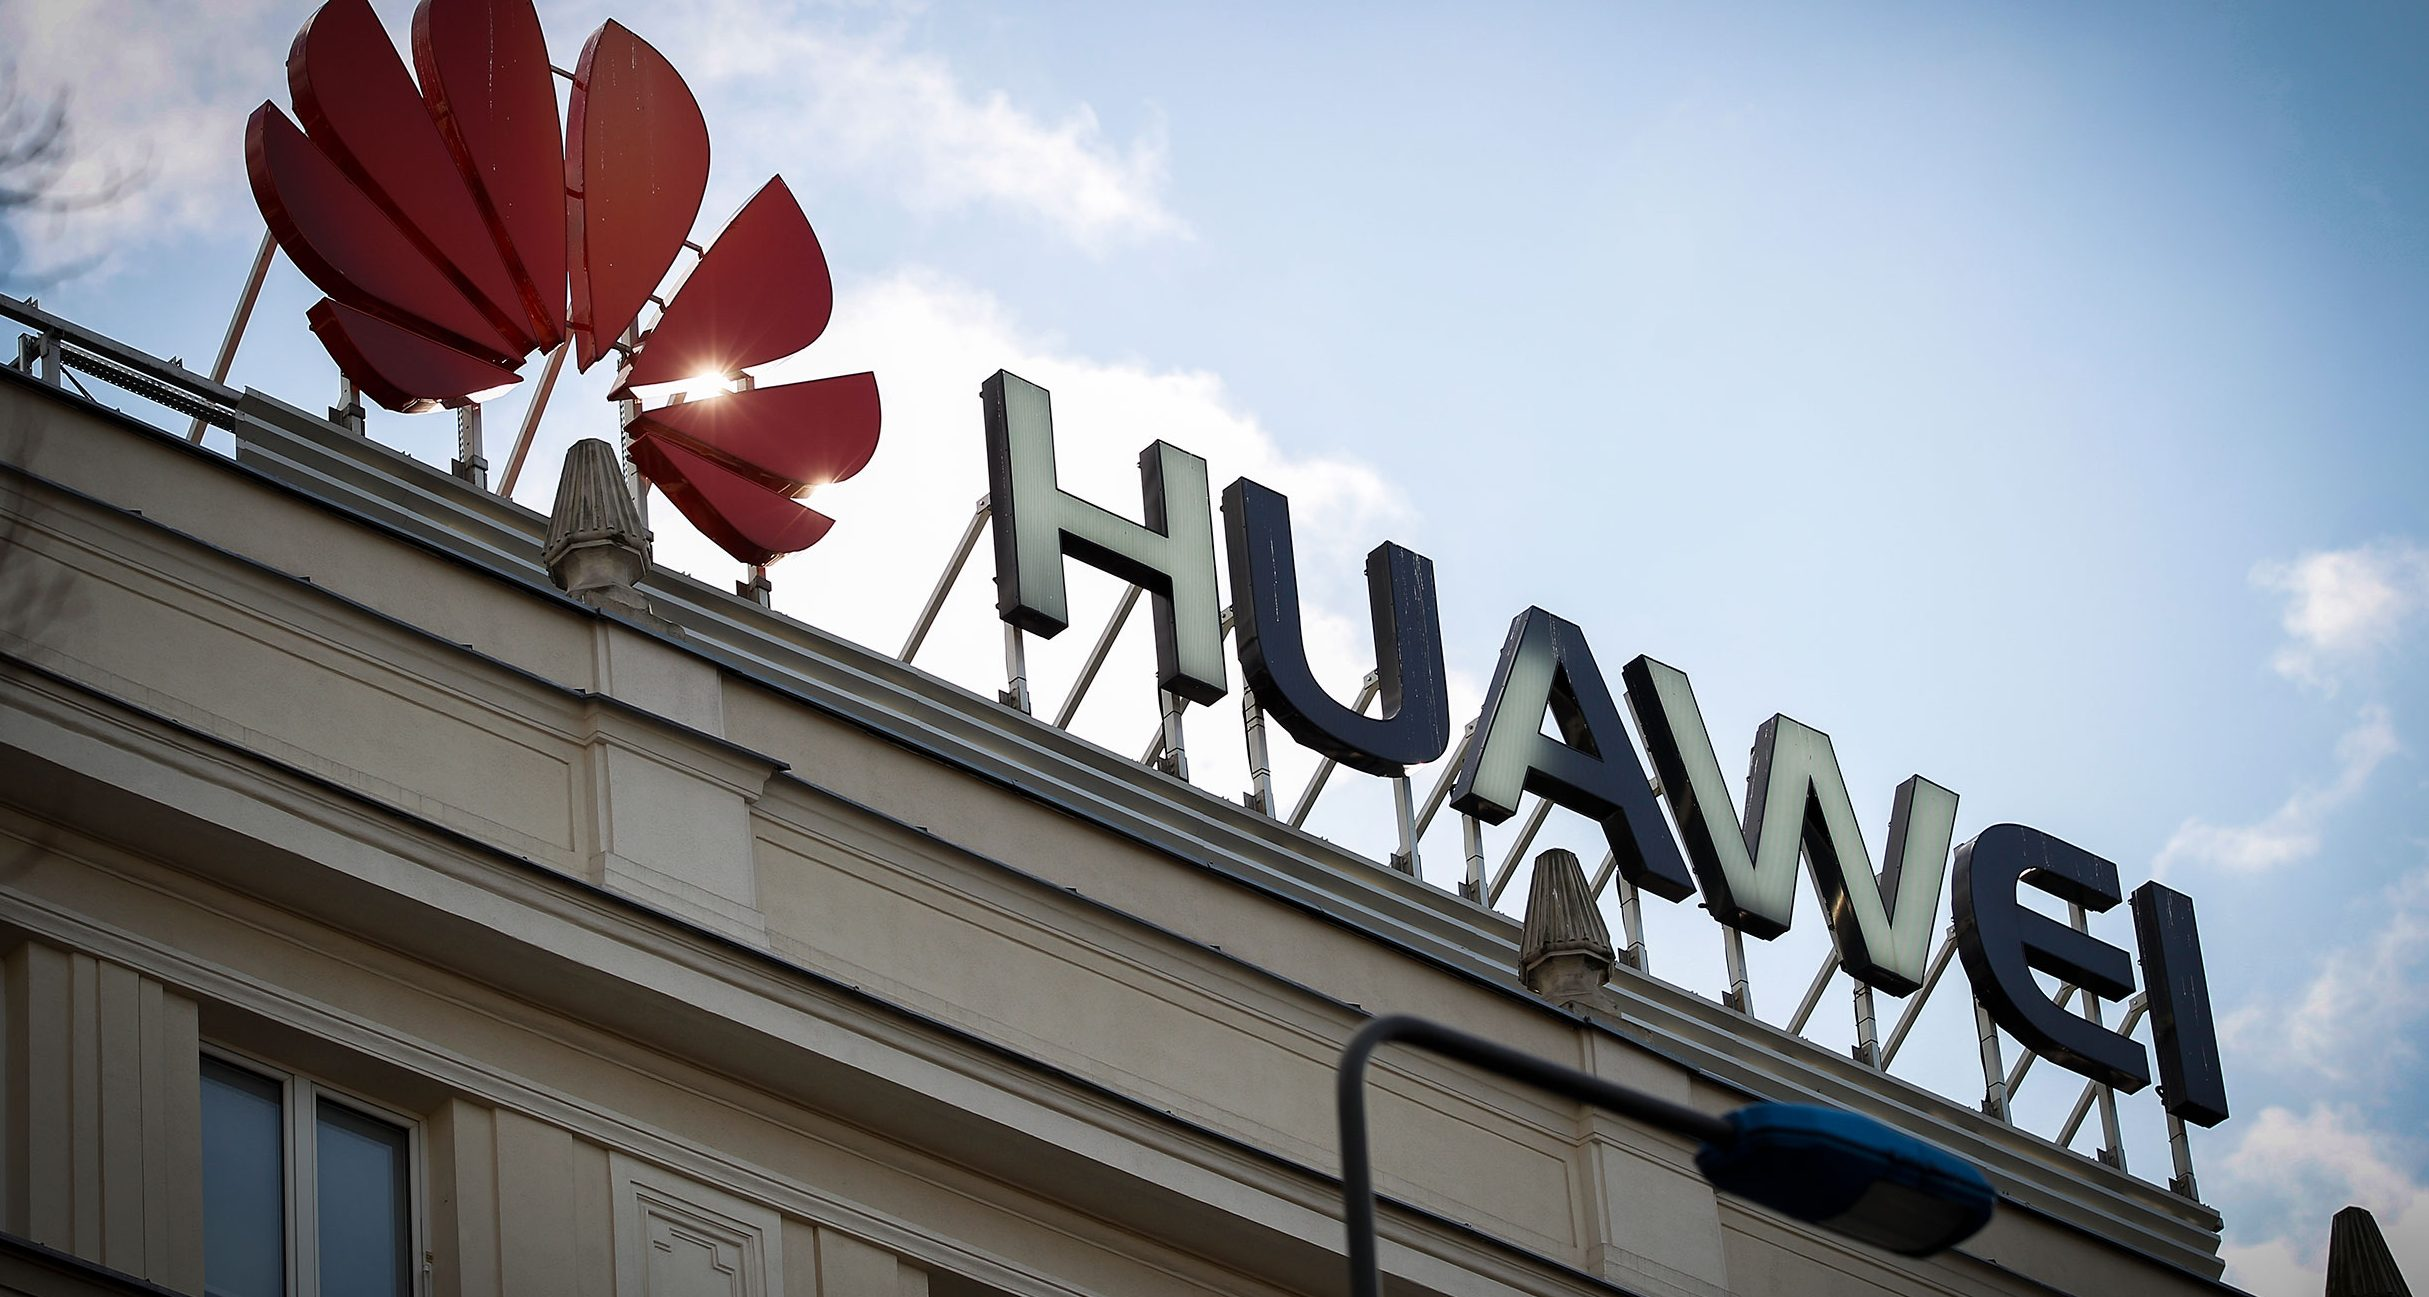 Huawei says it shipped 59M smartphones in Q1 as revenue jumped 39